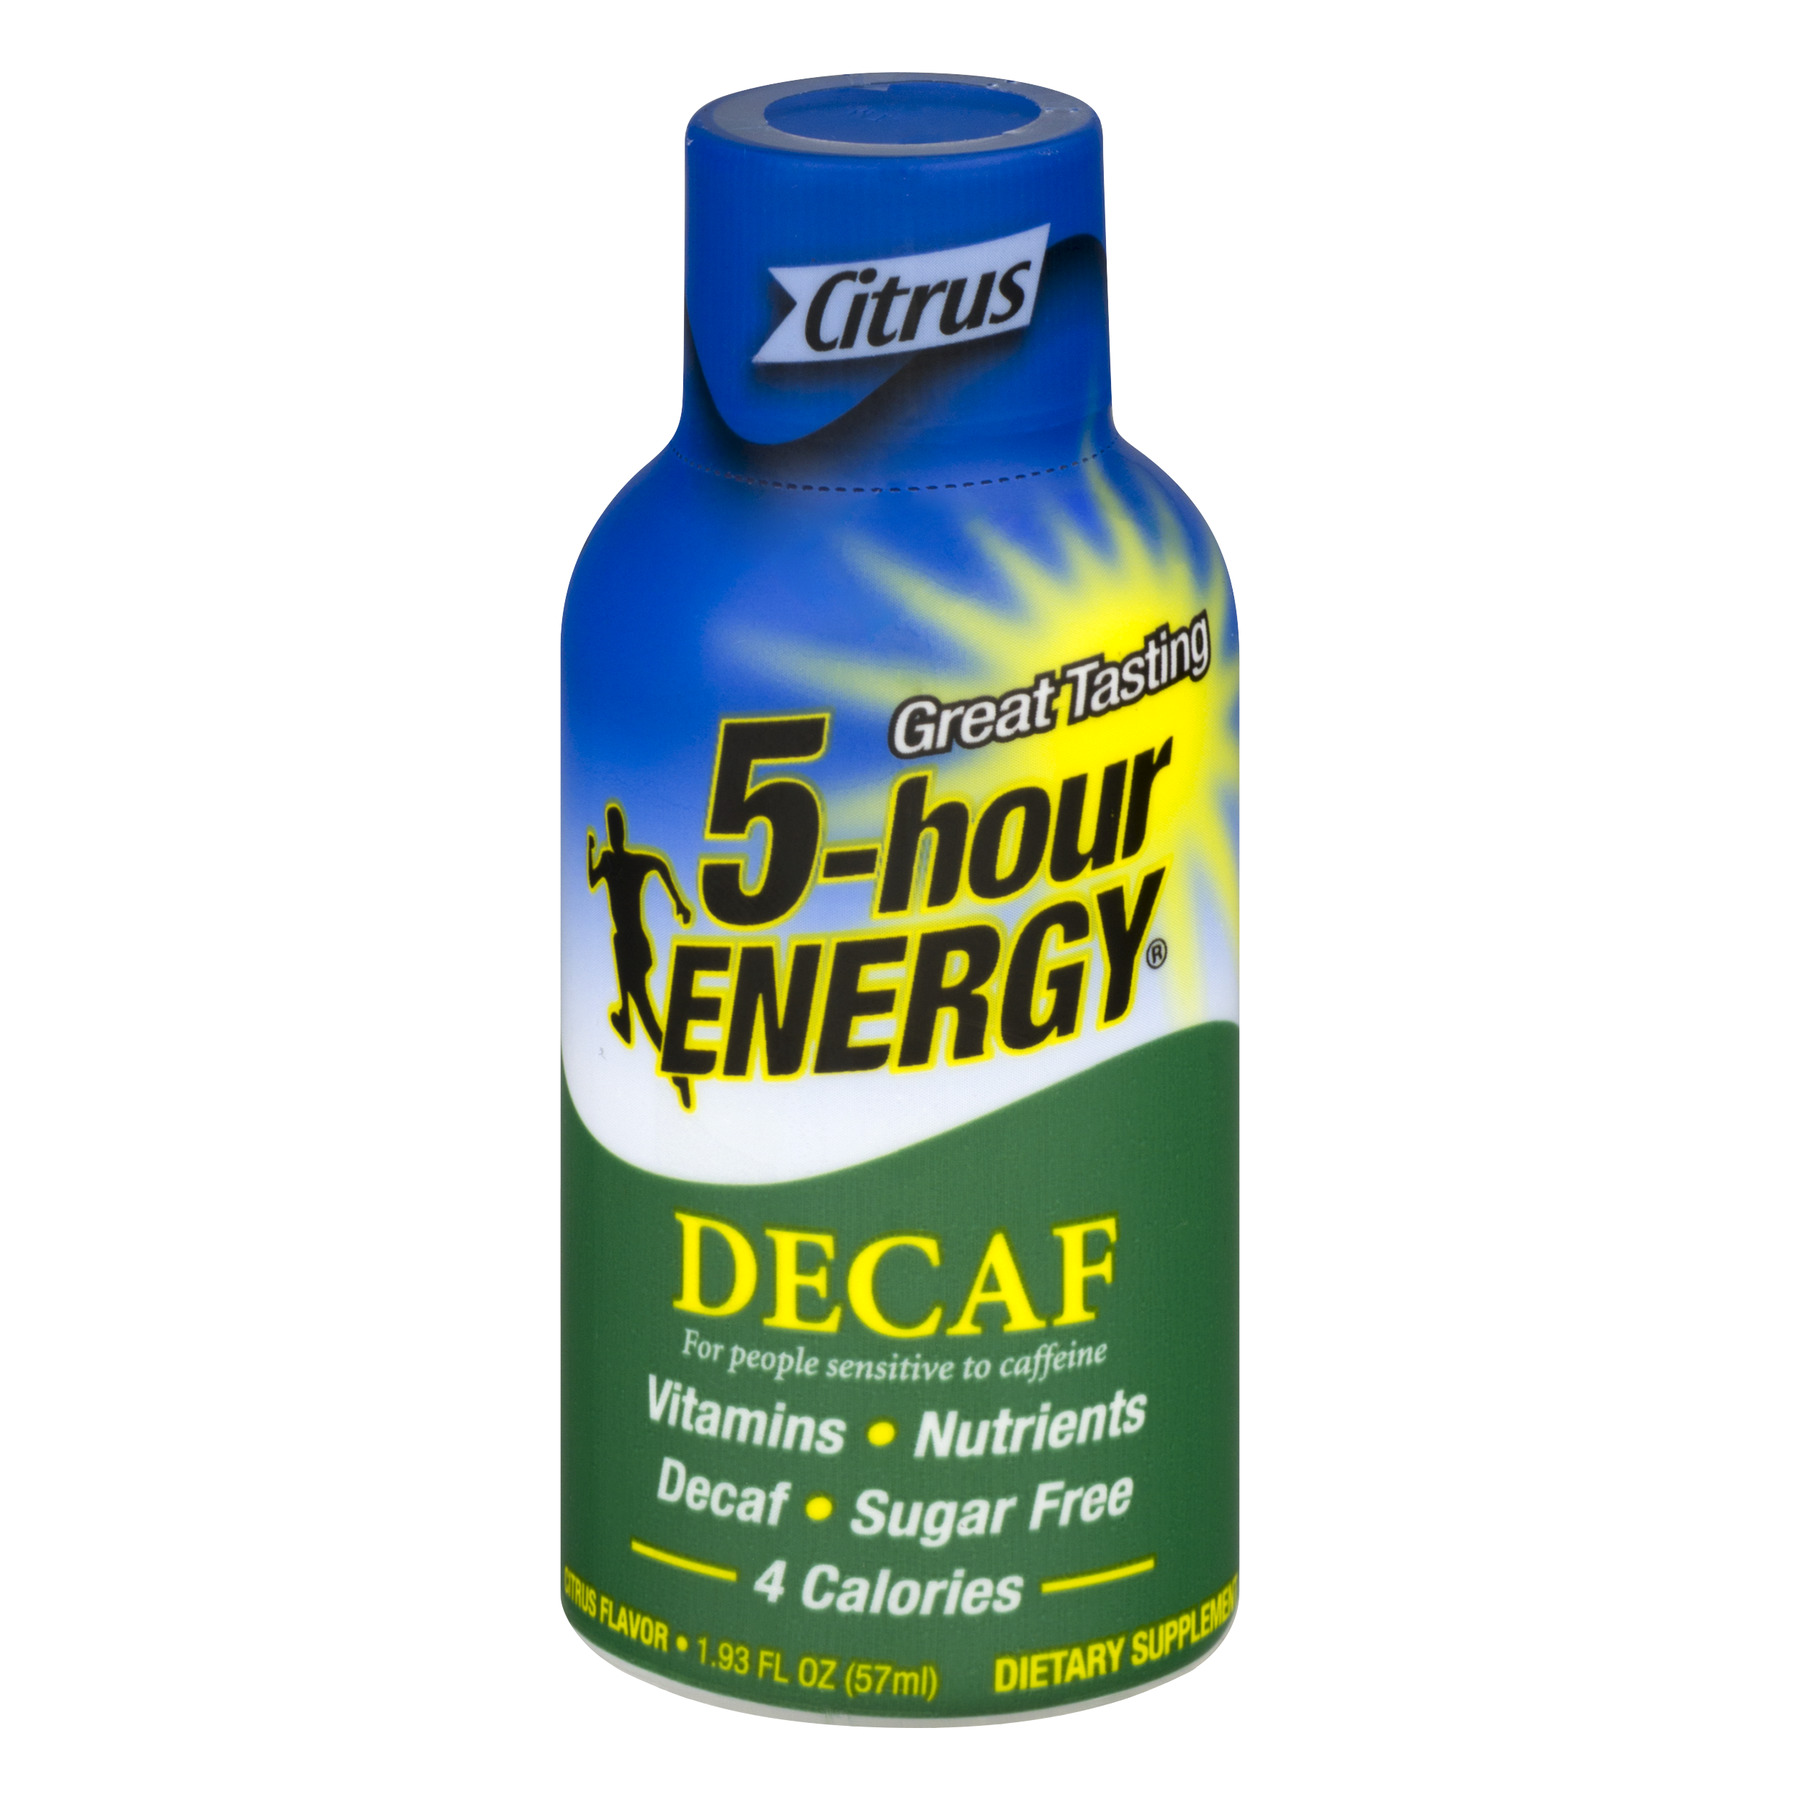 5-Hour Energy Decaf Dietary Supplement Citrus, 1.93 FL OZ